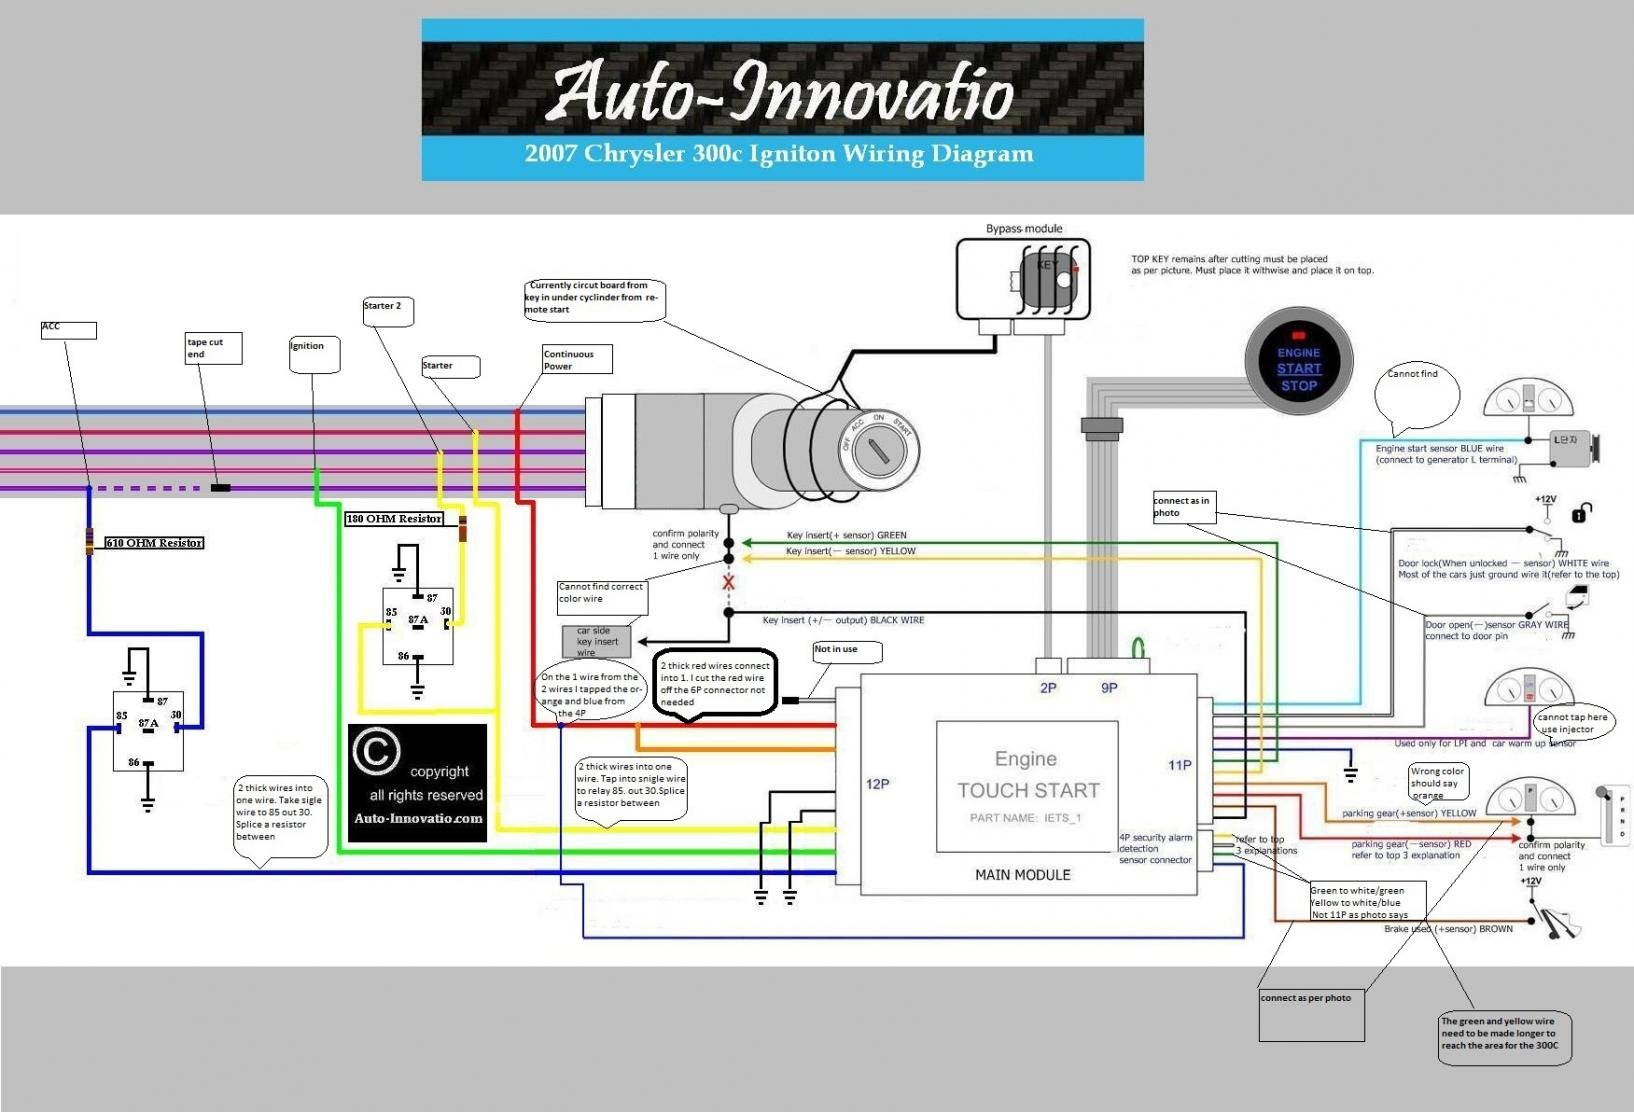 2008 Chrysler 300 Radio Wiring Diagram 38 Images 2004 Sebring Engine 38329d1313838473 Glow Plug Wire Touch Button 2007 300c Vehicle Igniton 1